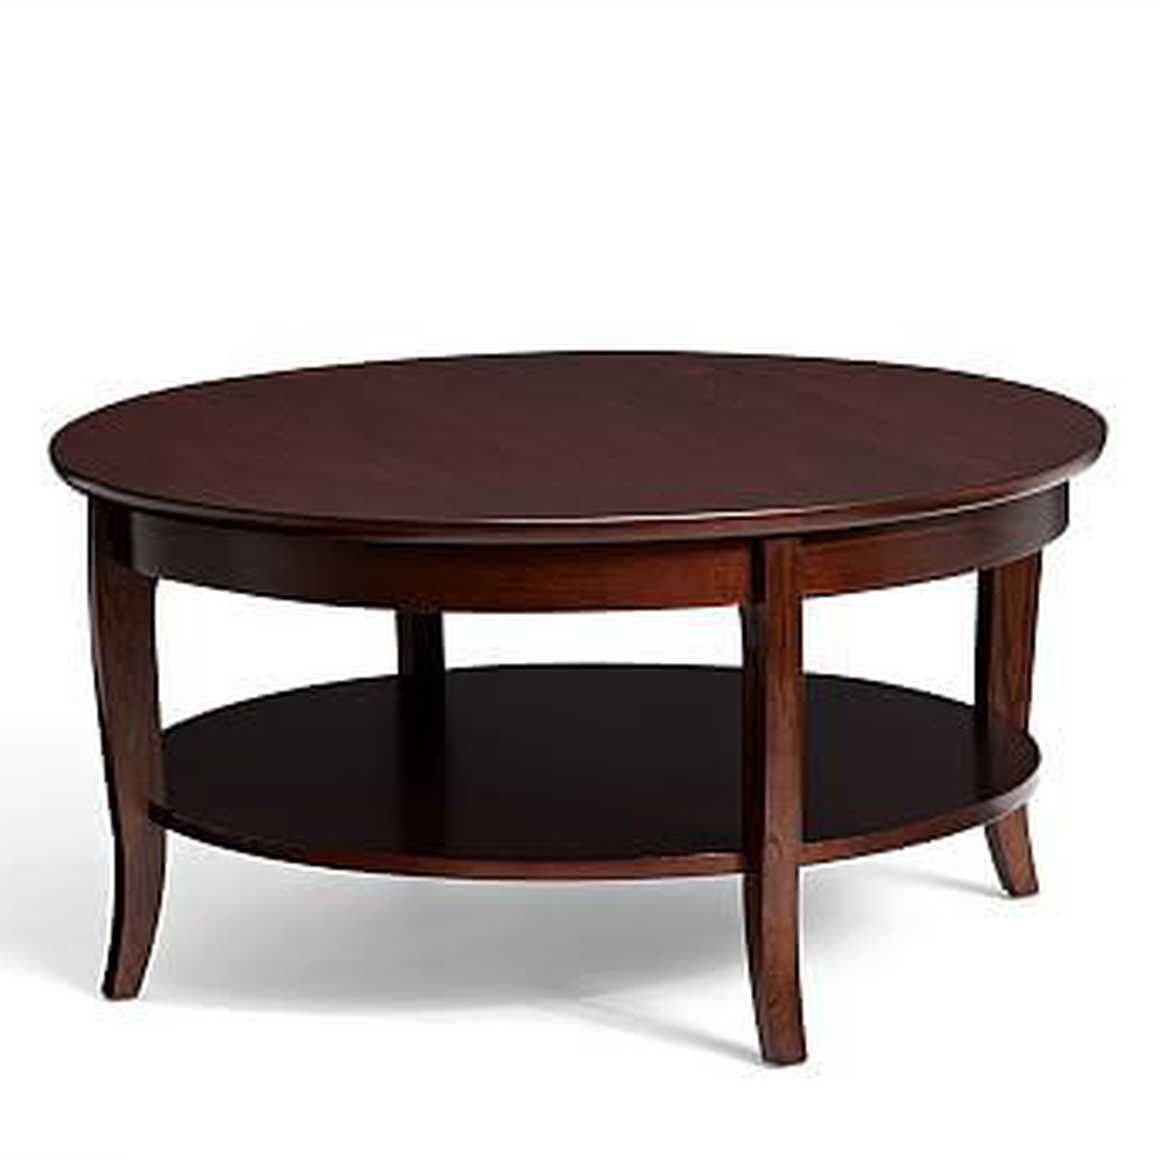 Chloe Round Coffee Table Mahogany Stain Pottery Barn Coffee Table Pottery Barn Coffee Table Round Coffee Table [ 1160 x 1160 Pixel ]